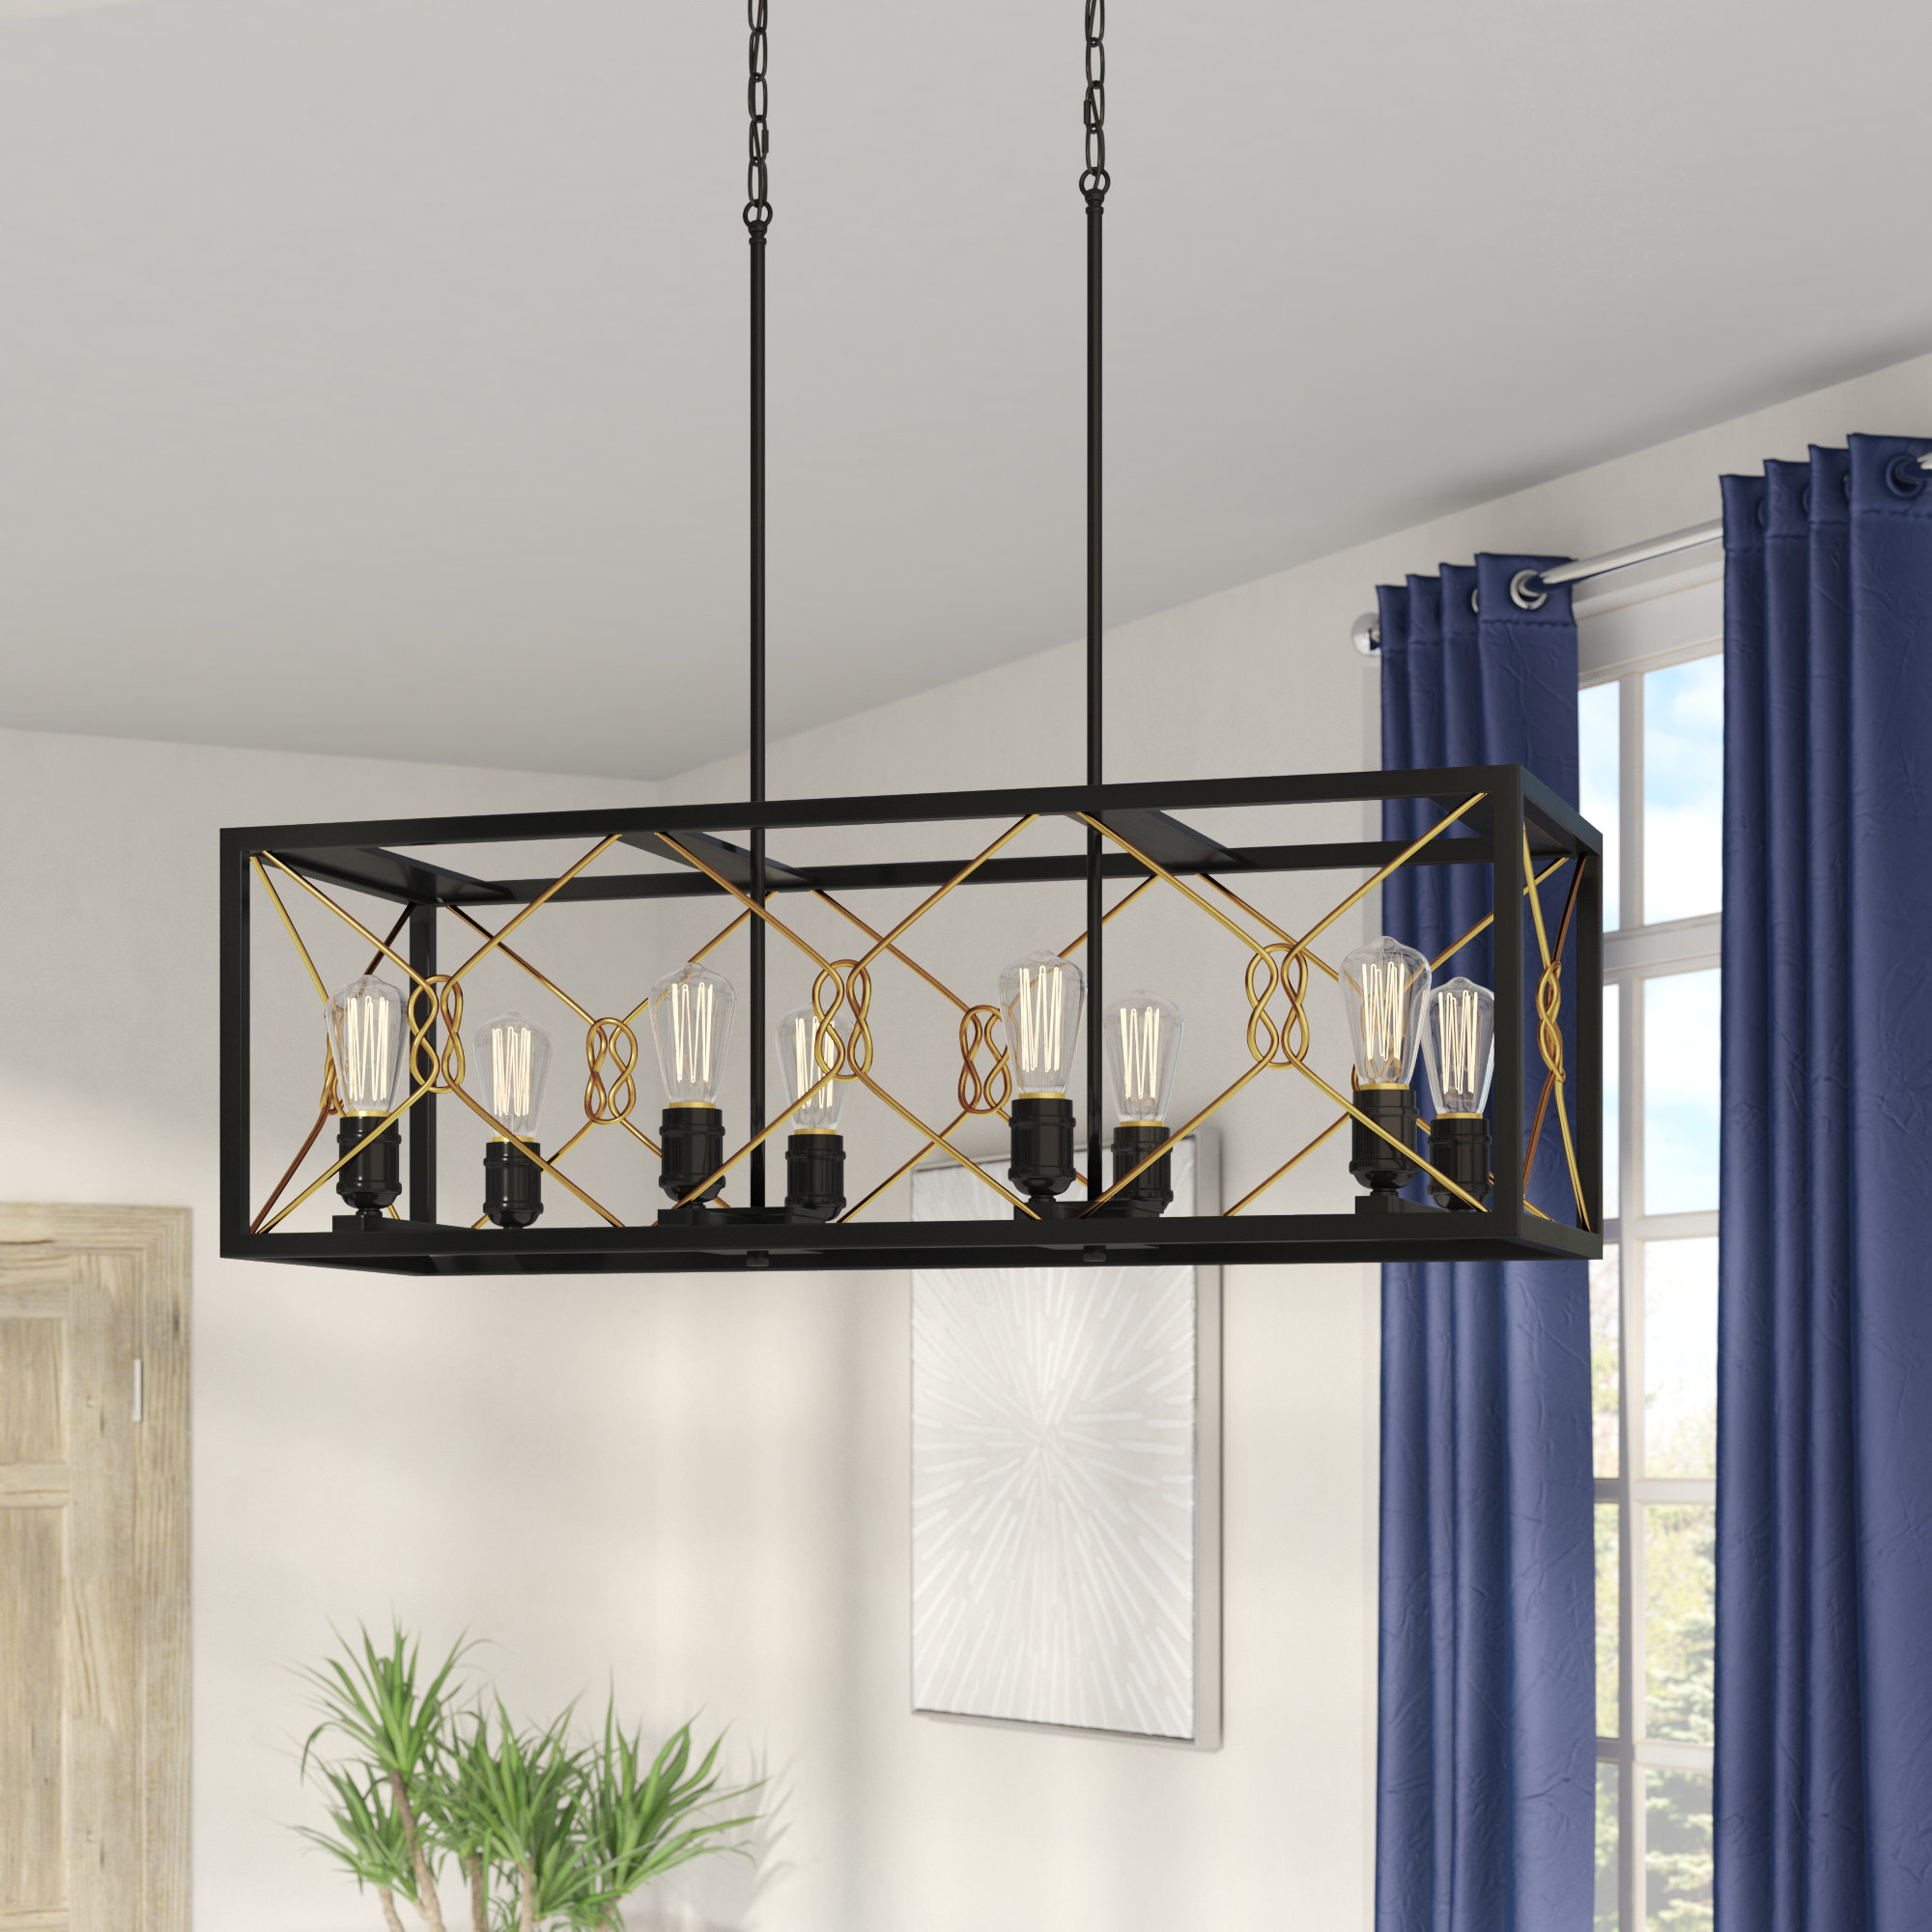 Hewitt 4 Light Square Chandeliers In Latest Industrial Square & Rectangular Chandeliers You'll Love In (View 7 of 20)